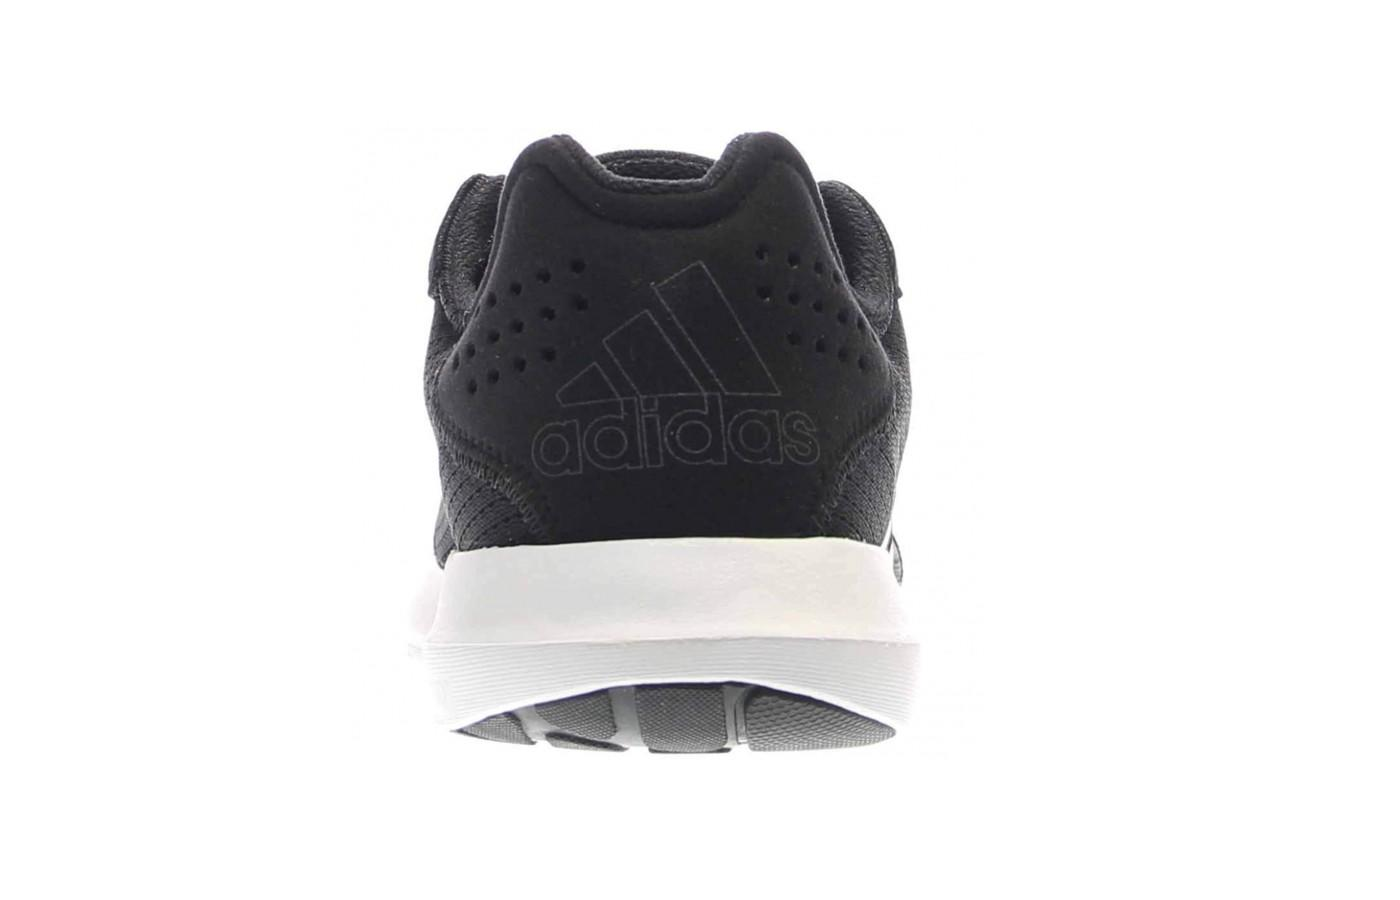 here's a look at the heel of the Adidas Element Athletic